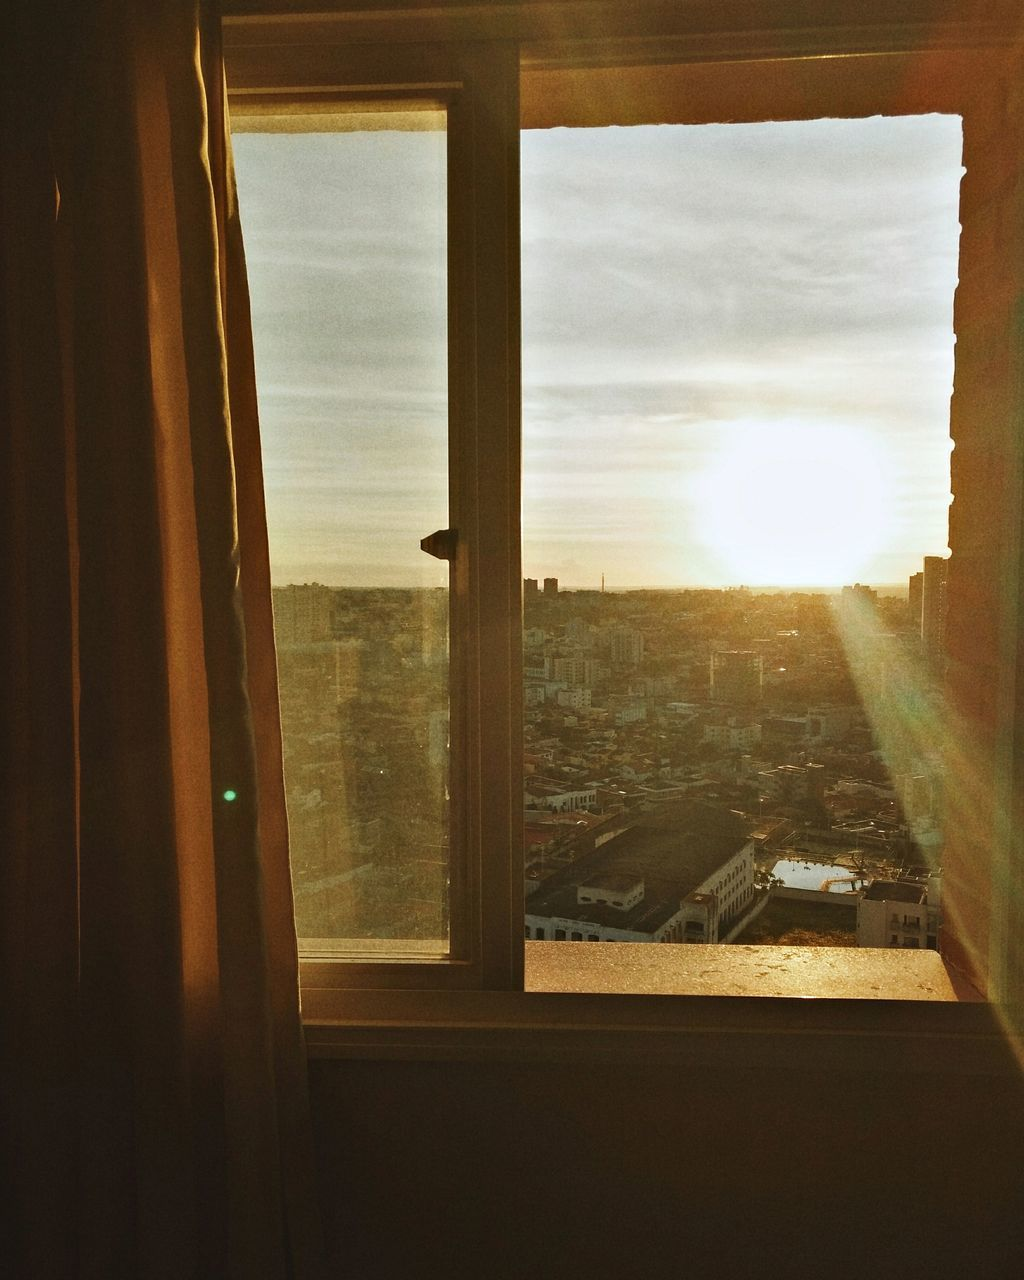 window, sky, indoors, sun, sunlight, built structure, looking through window, no people, day, architecture, building exterior, cityscape, nature, close-up